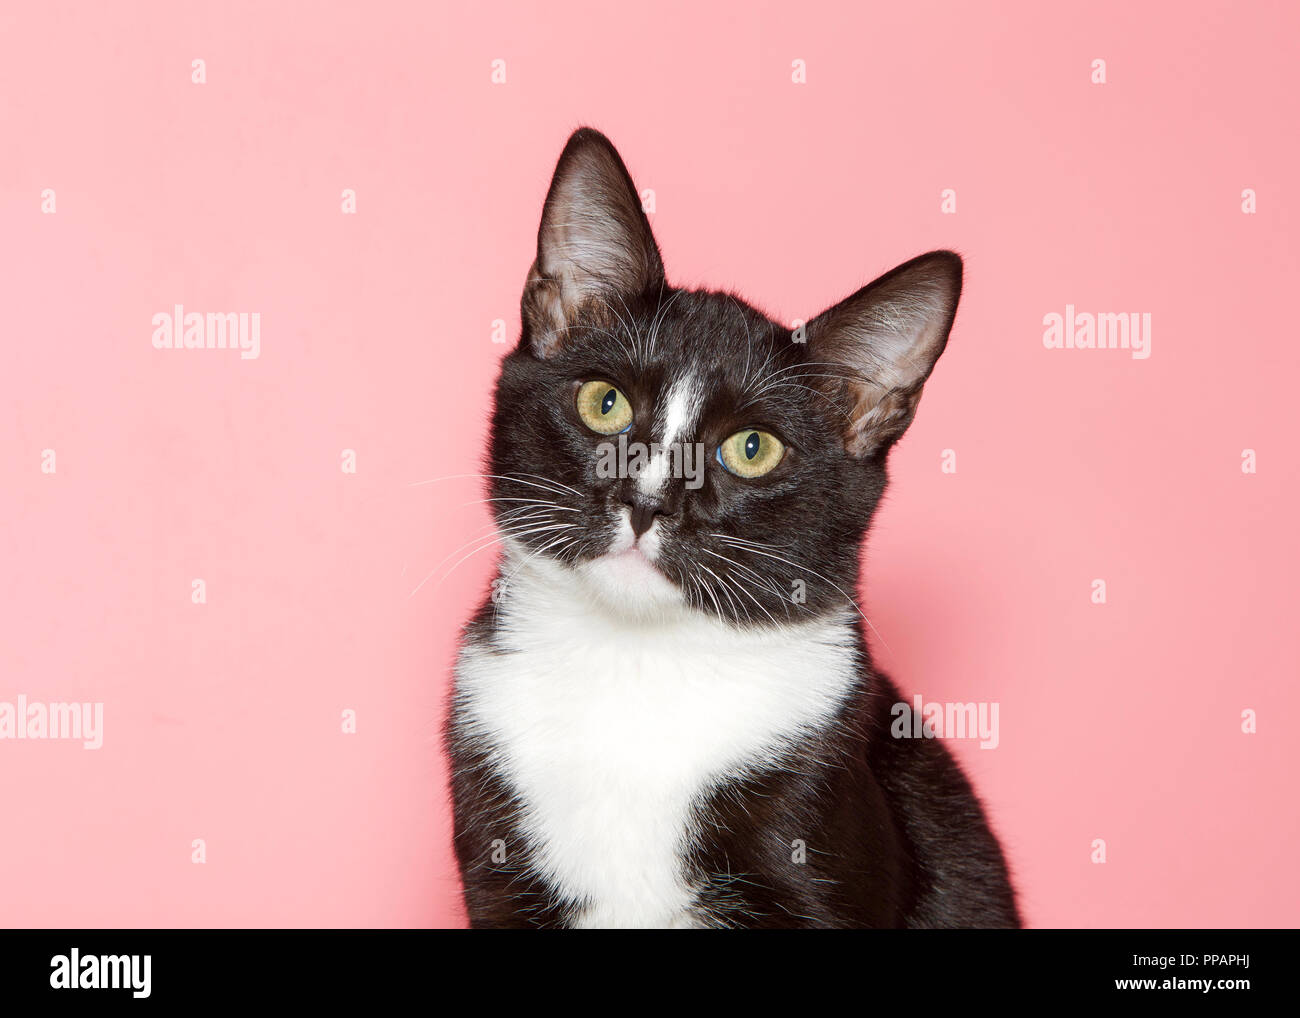 Portrait of an adorable tuxedo kitten with green eyes, head tilted looking directly at viewer curiously. Pink background with copy space. - Stock Image